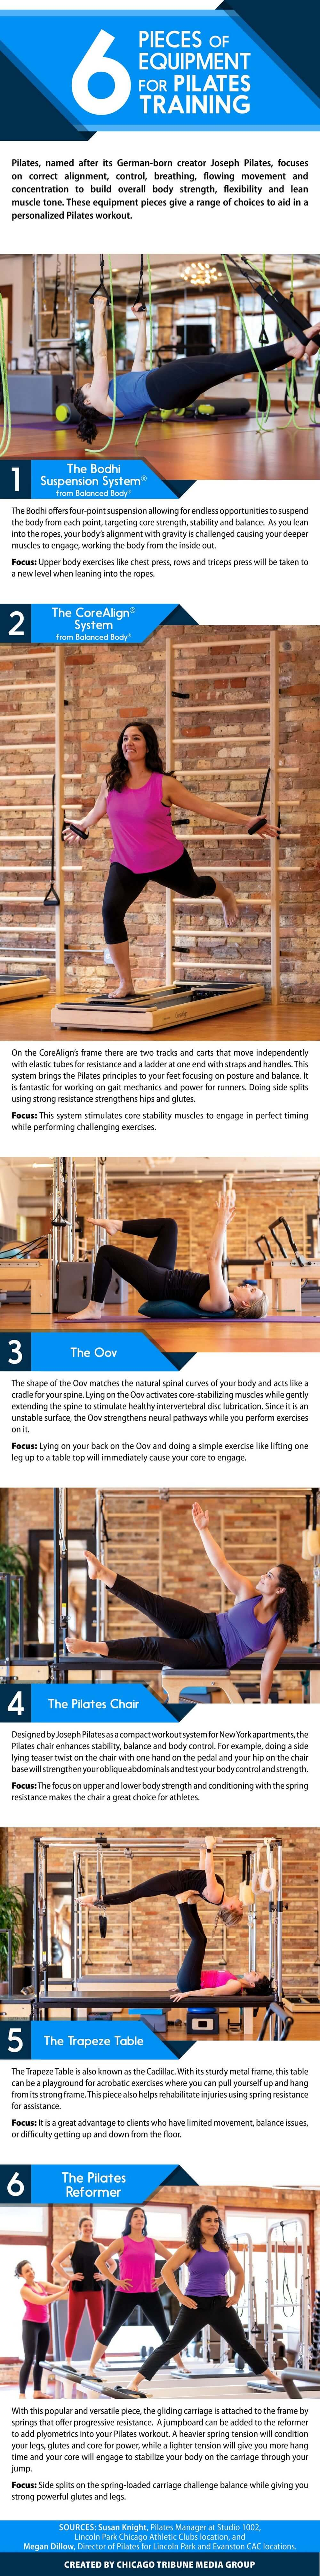 CAC_May2019_pilates infographic